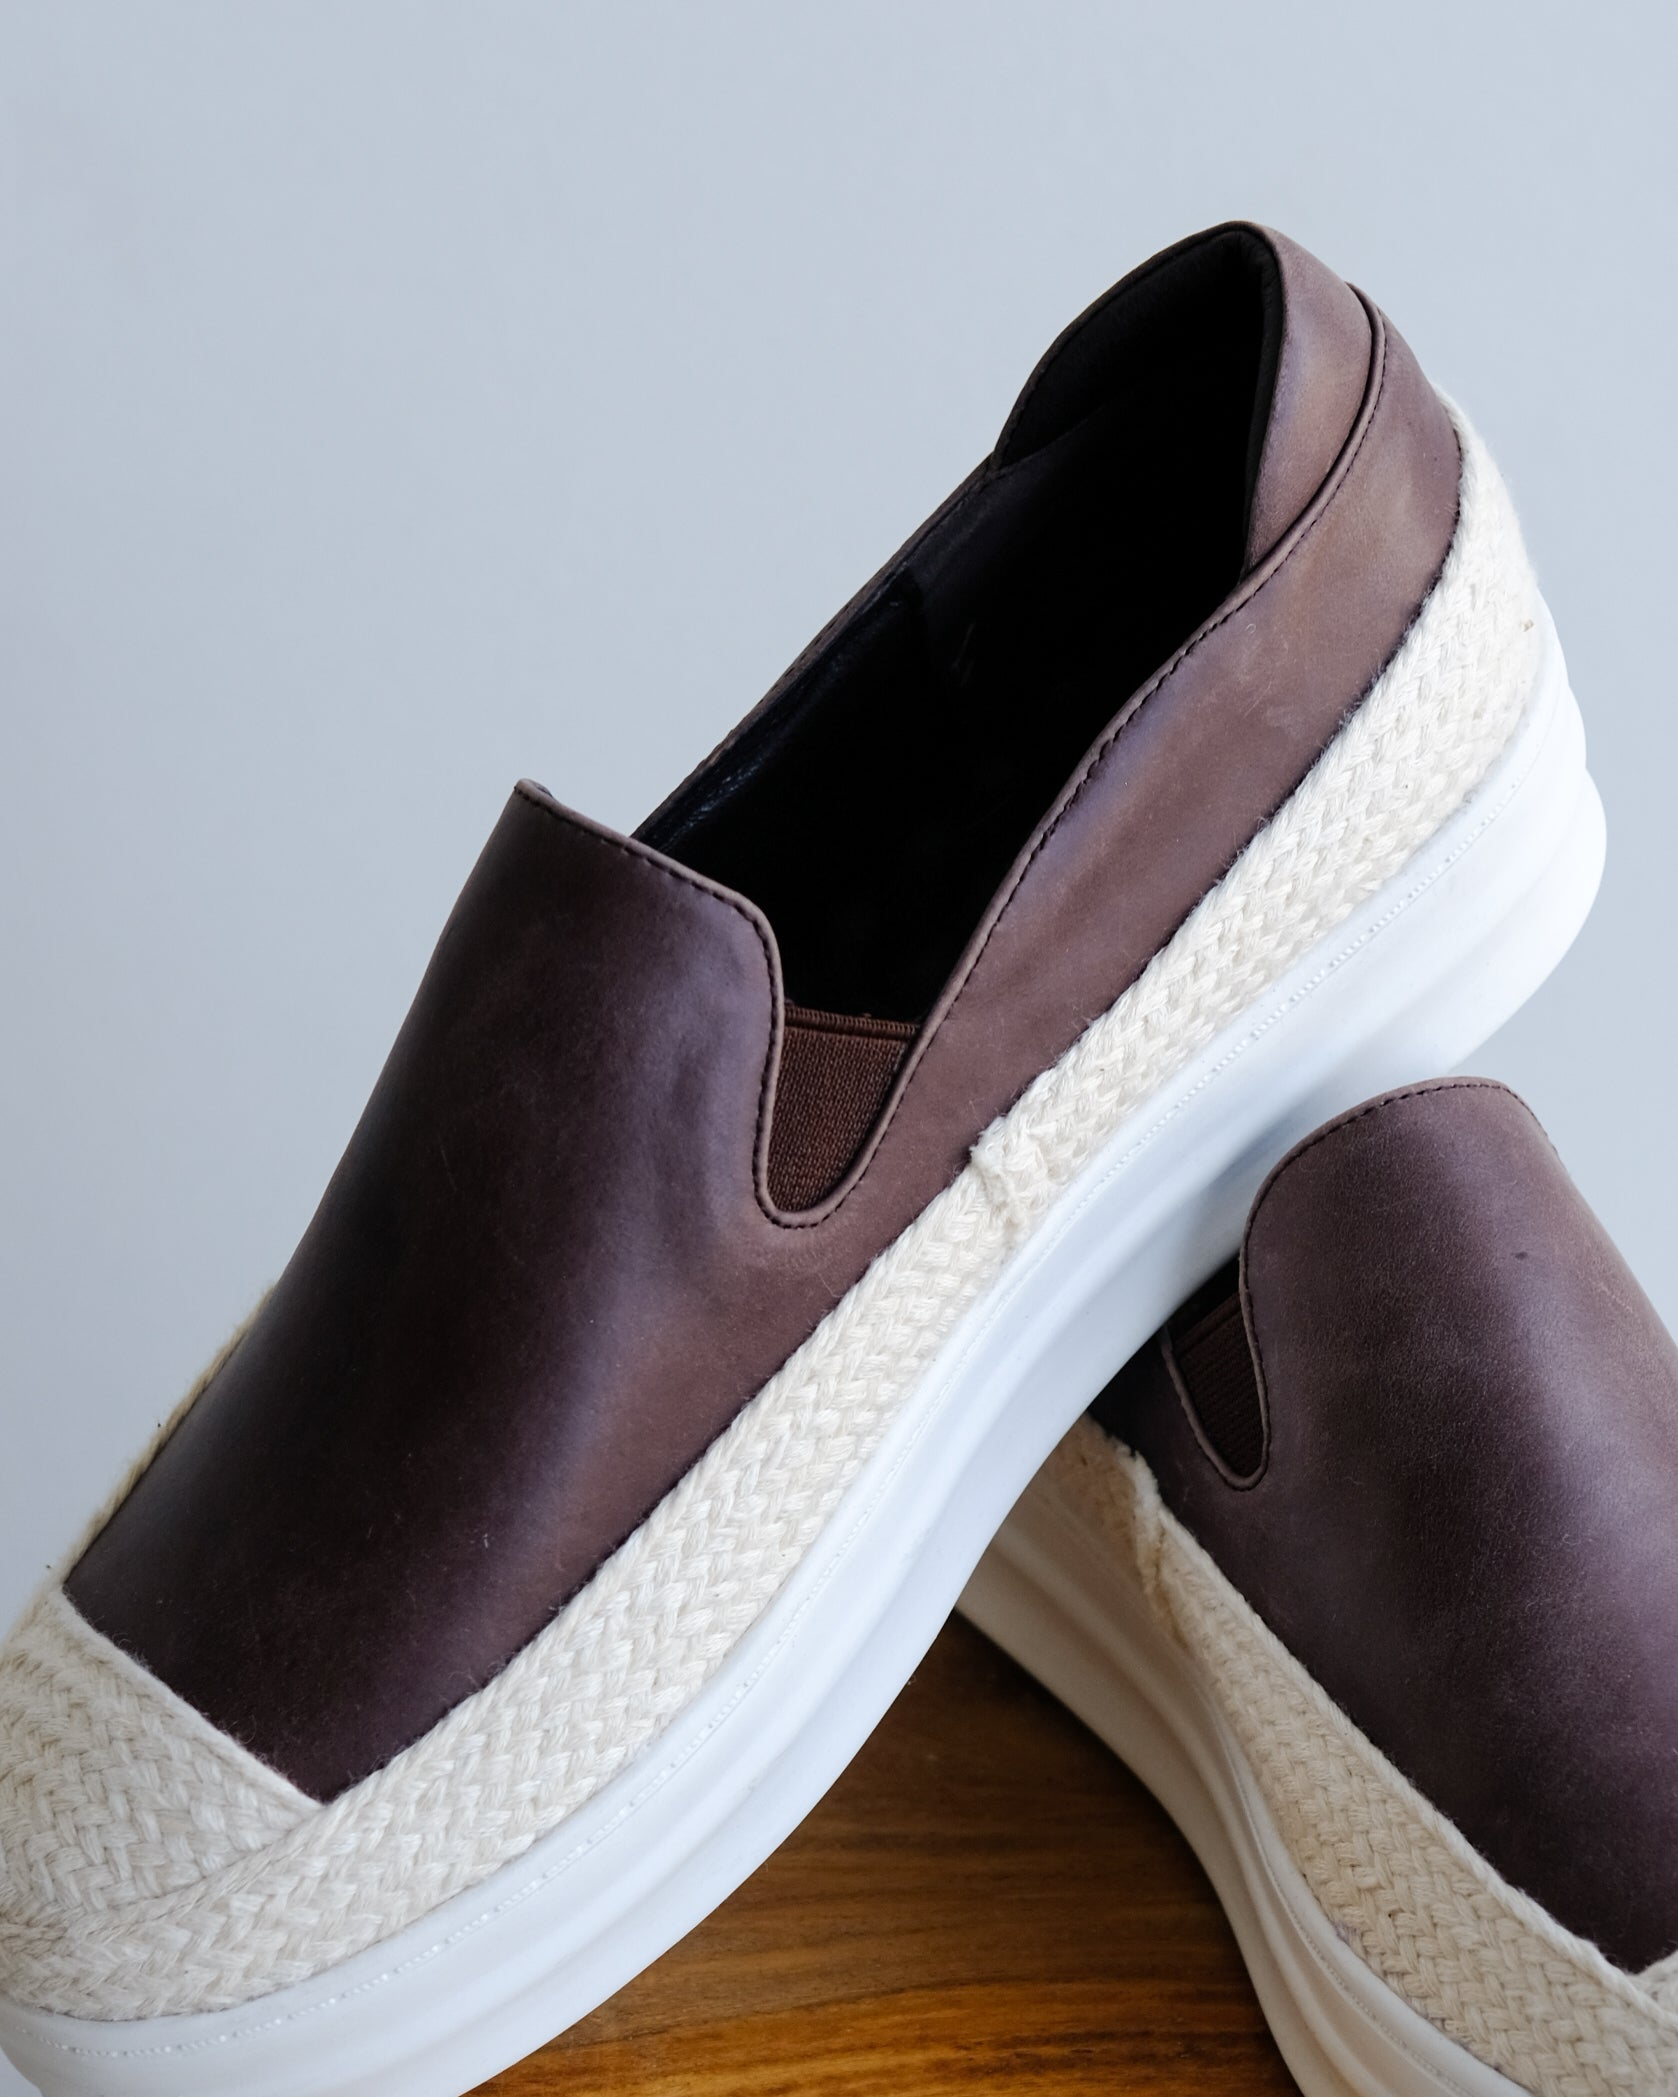 Espadrilles in Chocolate